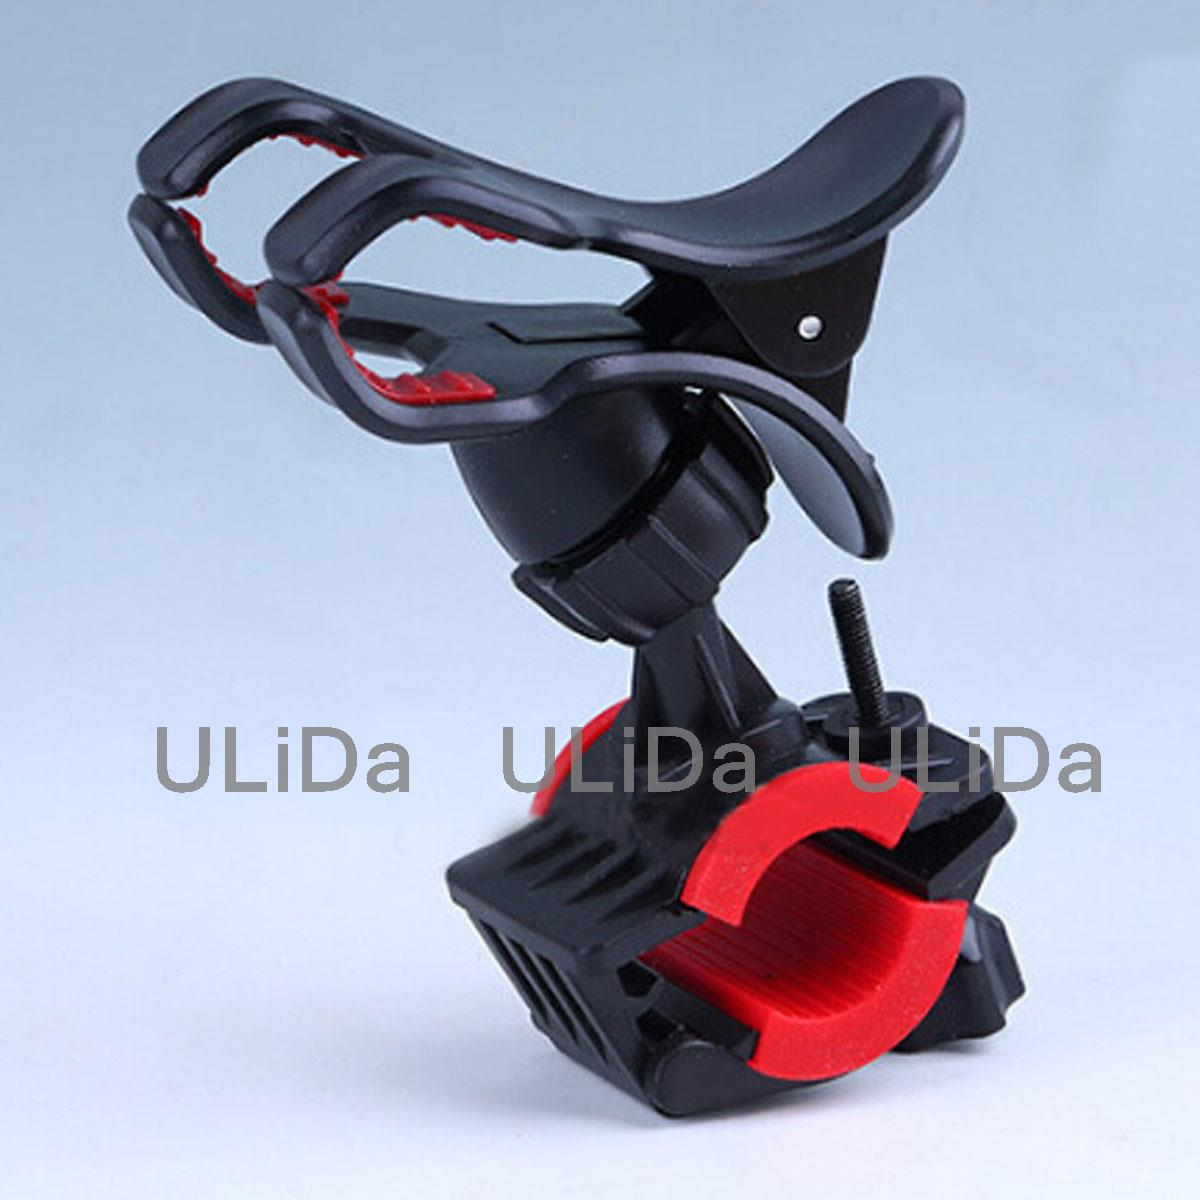 Smartphone Mount Holder for Feiyu Tech G3 Ultra 2 Steadycam Handheld Gimbal Stabilizer Phone Holder